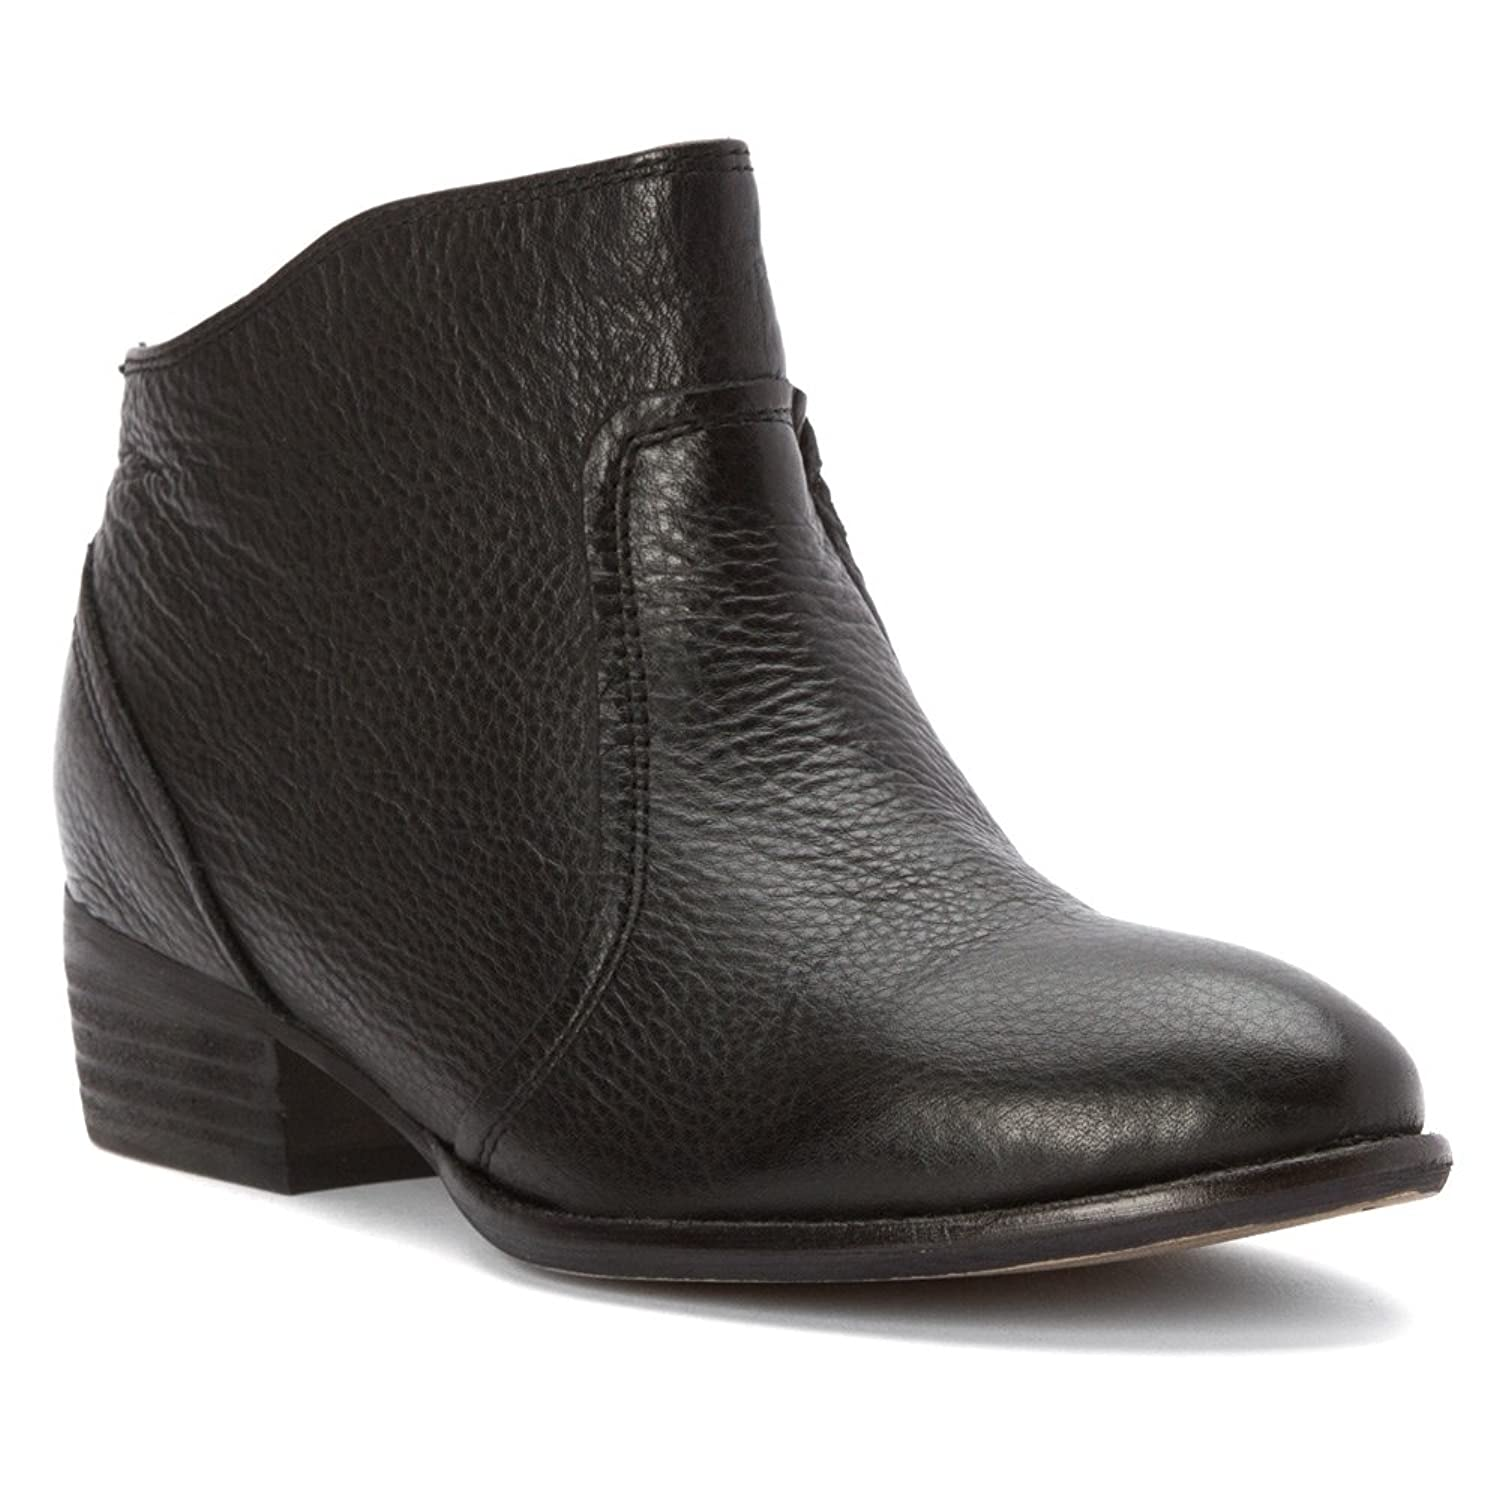 Seychelles Women's Reunited Boot Black Leather